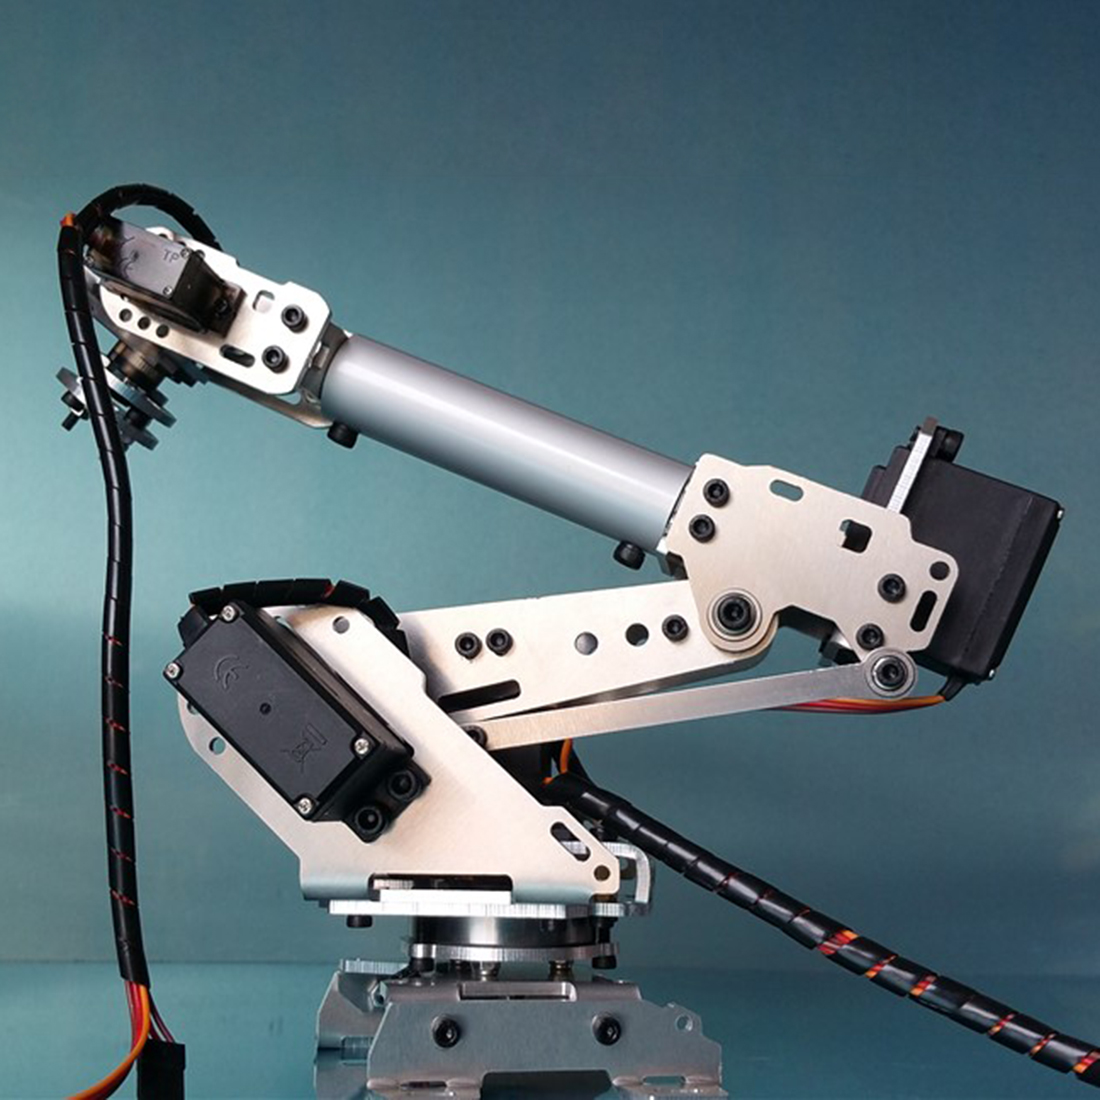 High Tech DIY 6DOF Mechanical Arm Robot Kit PS2 Remote Control Robot For Arduino Programmable Toys 2019 Gift